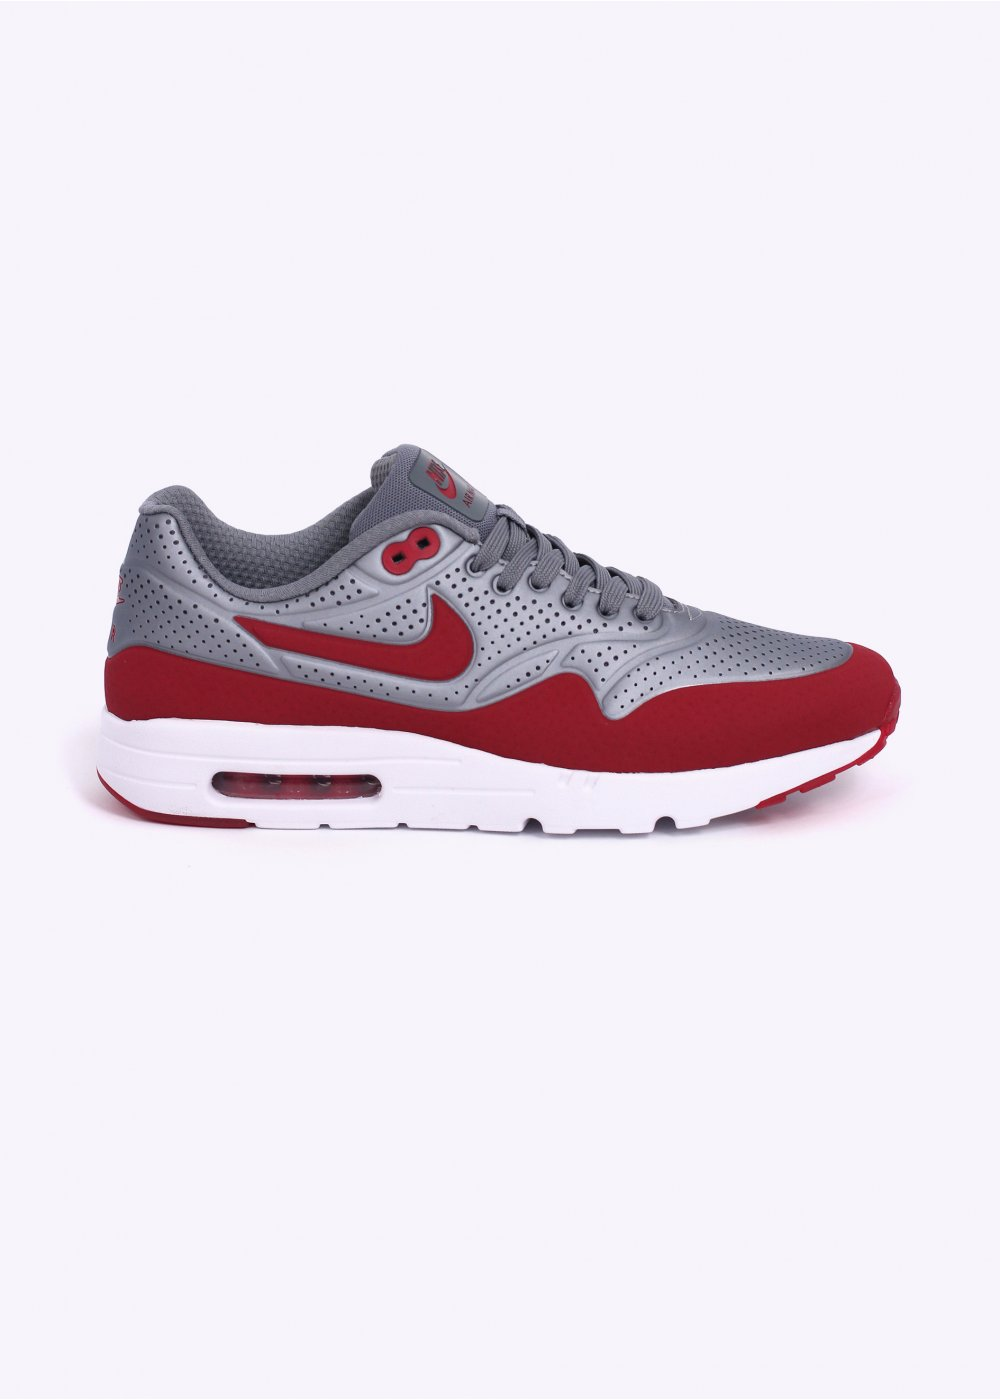 wholesale dealer befbb dd874 Air Max 1 Ultra Moire Trainers - Metallic Cool Grey   Gym Red